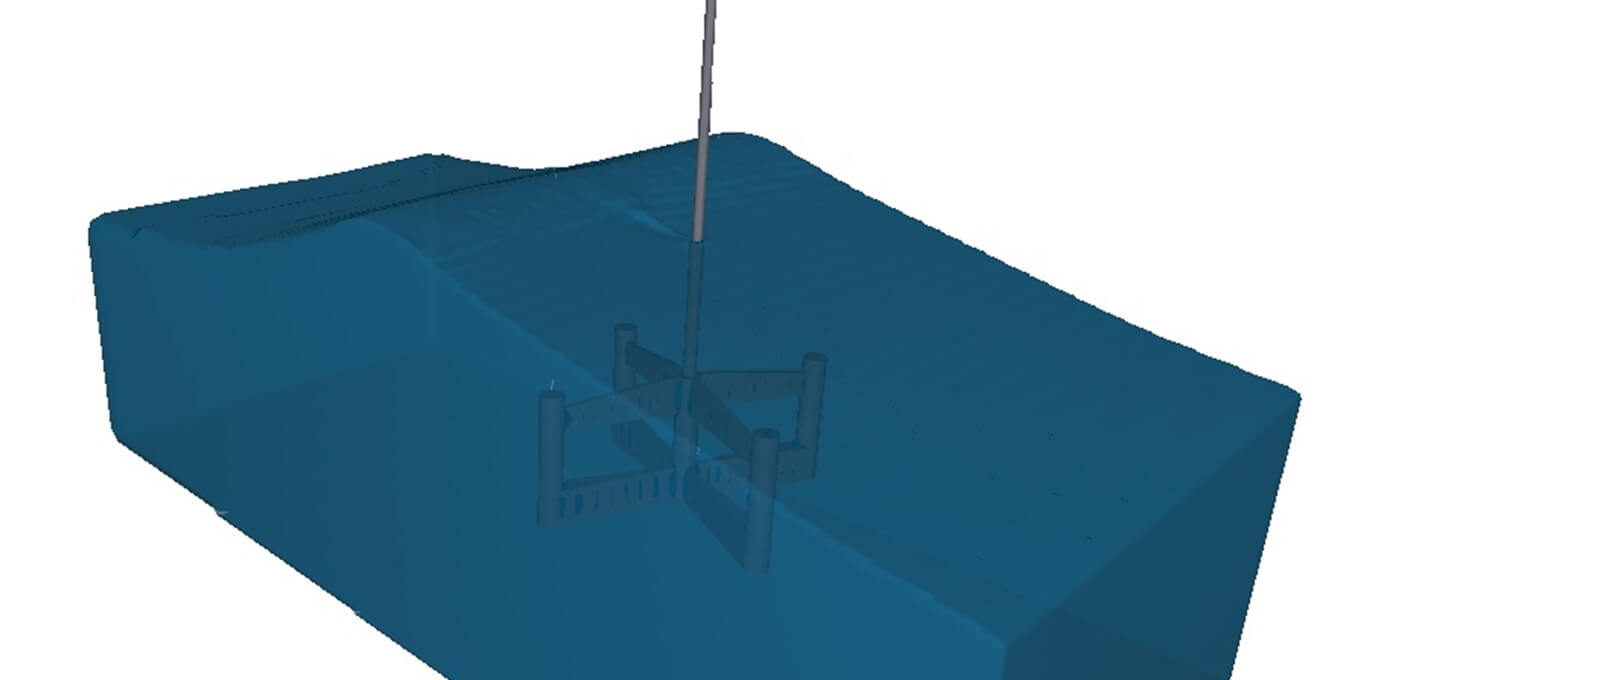 Offshore Structures - Simulation of Hydrodynamic Behaviour